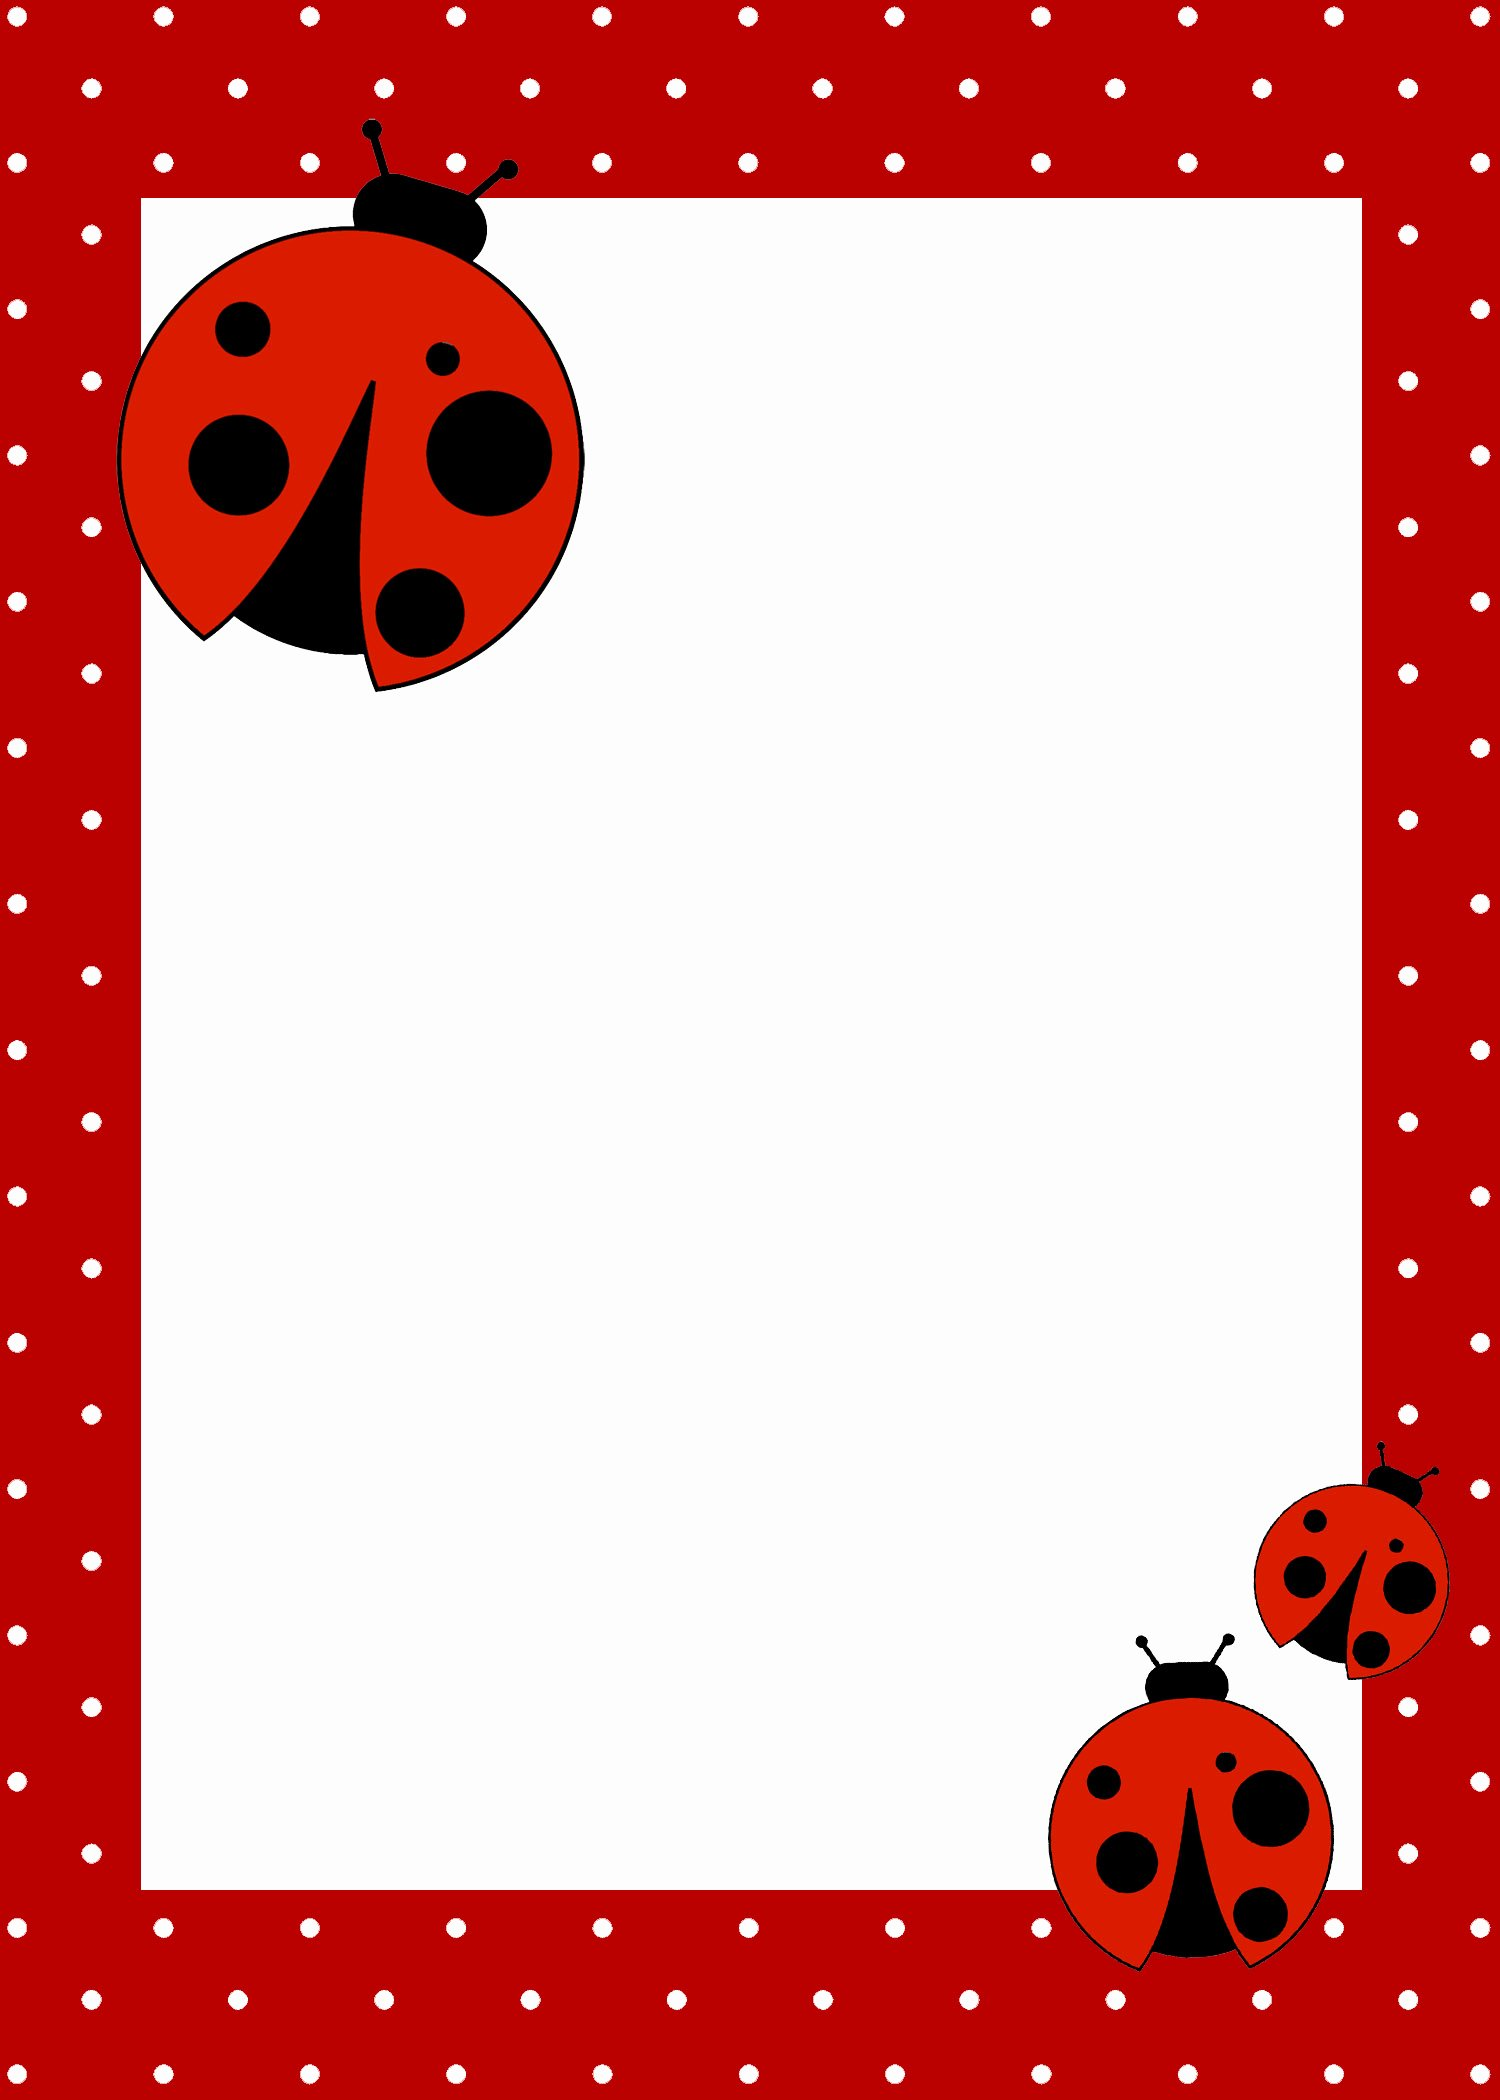 Ladybug Invitations Template Free Best Of Ladybug themed Birthday Party with Free Printables How